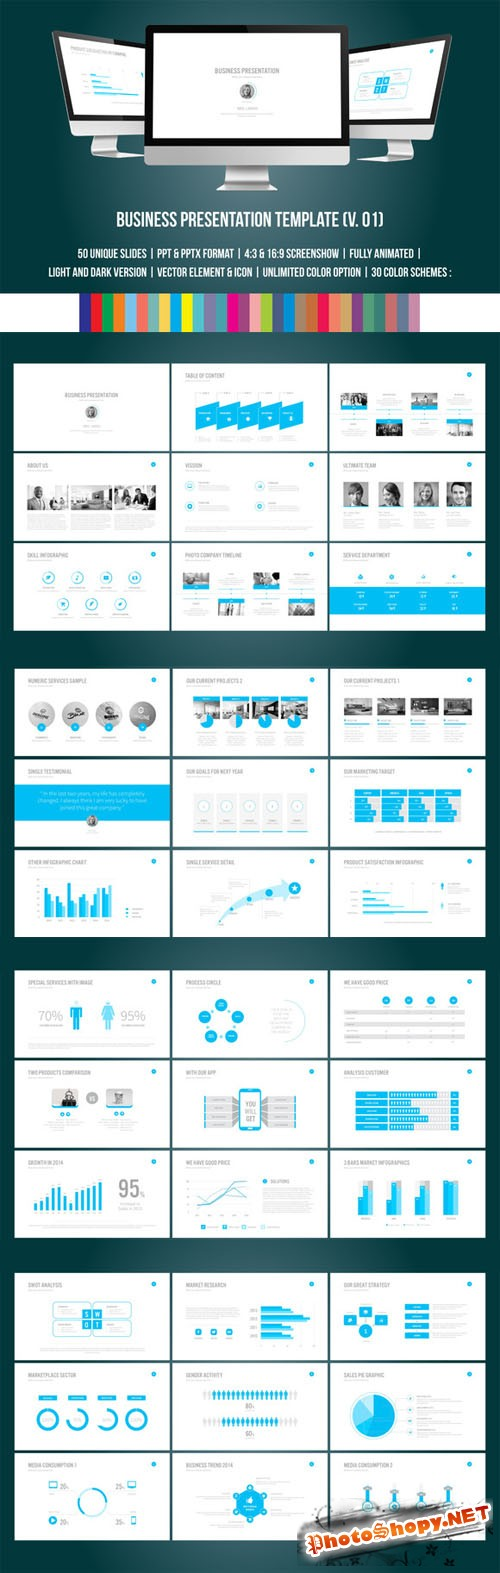 Multipurpose Powerpoint Template V01 - CM 69839